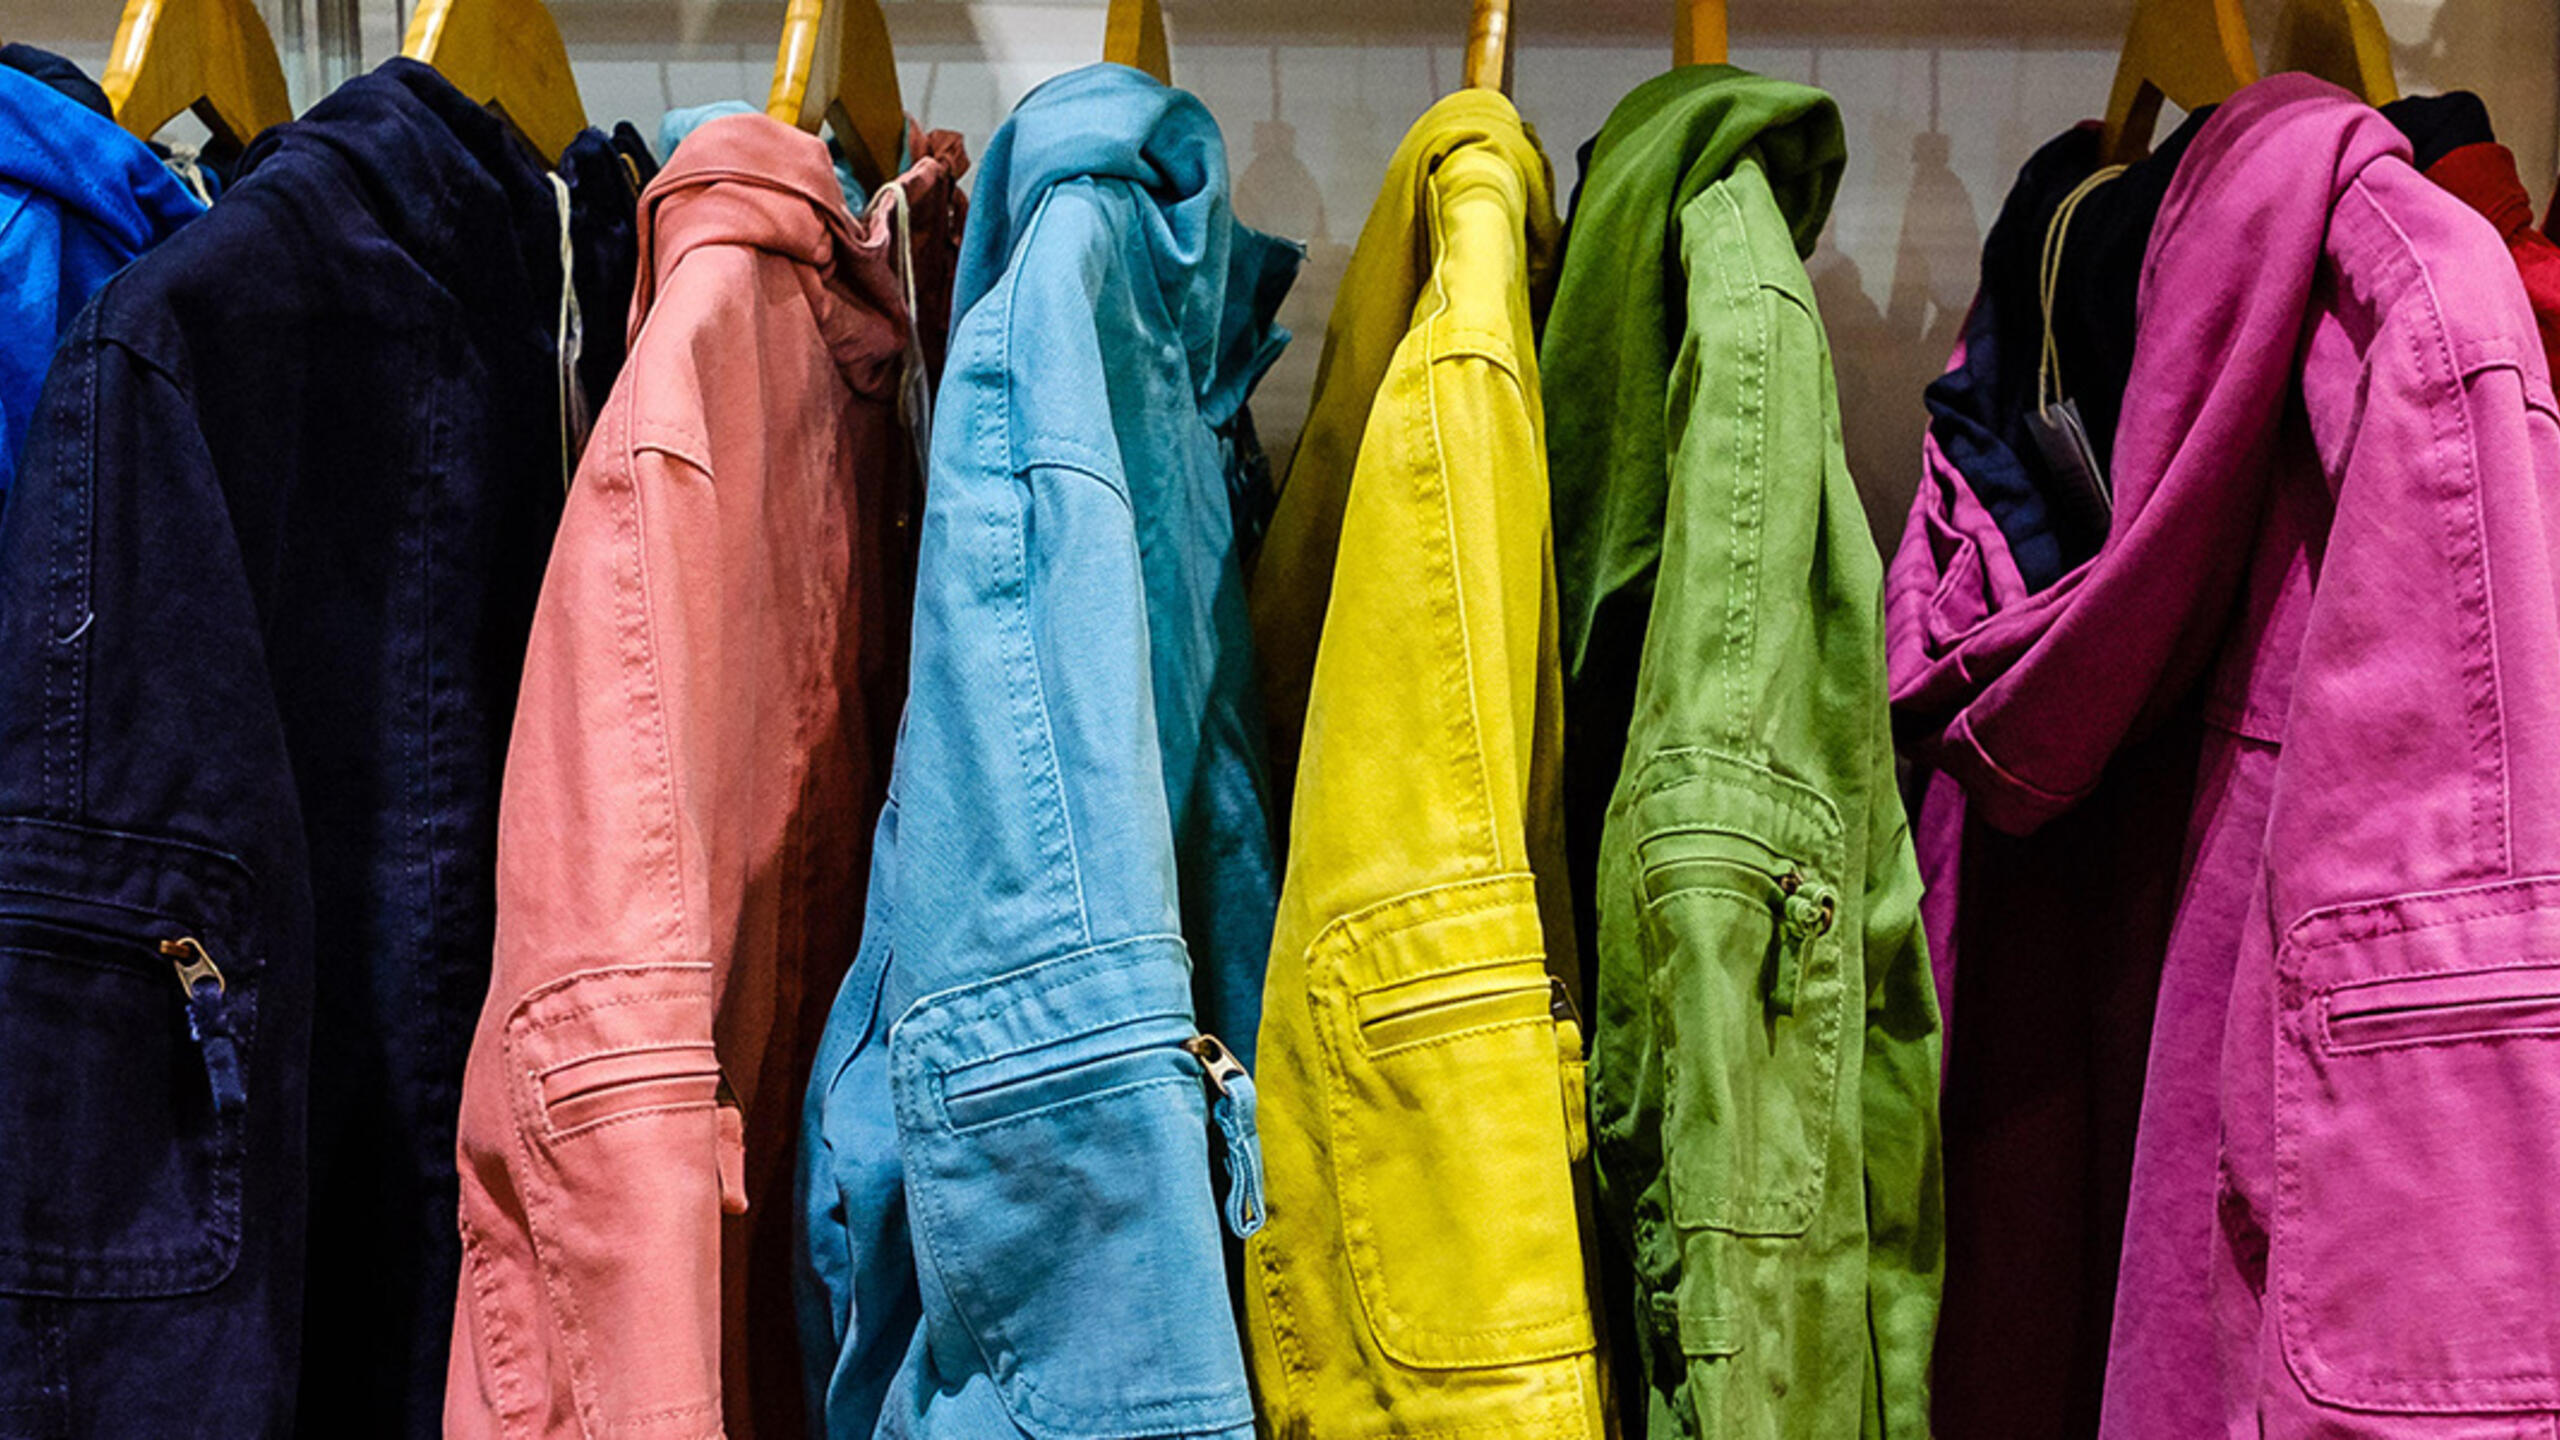 A coat rack of jackets of different colors.